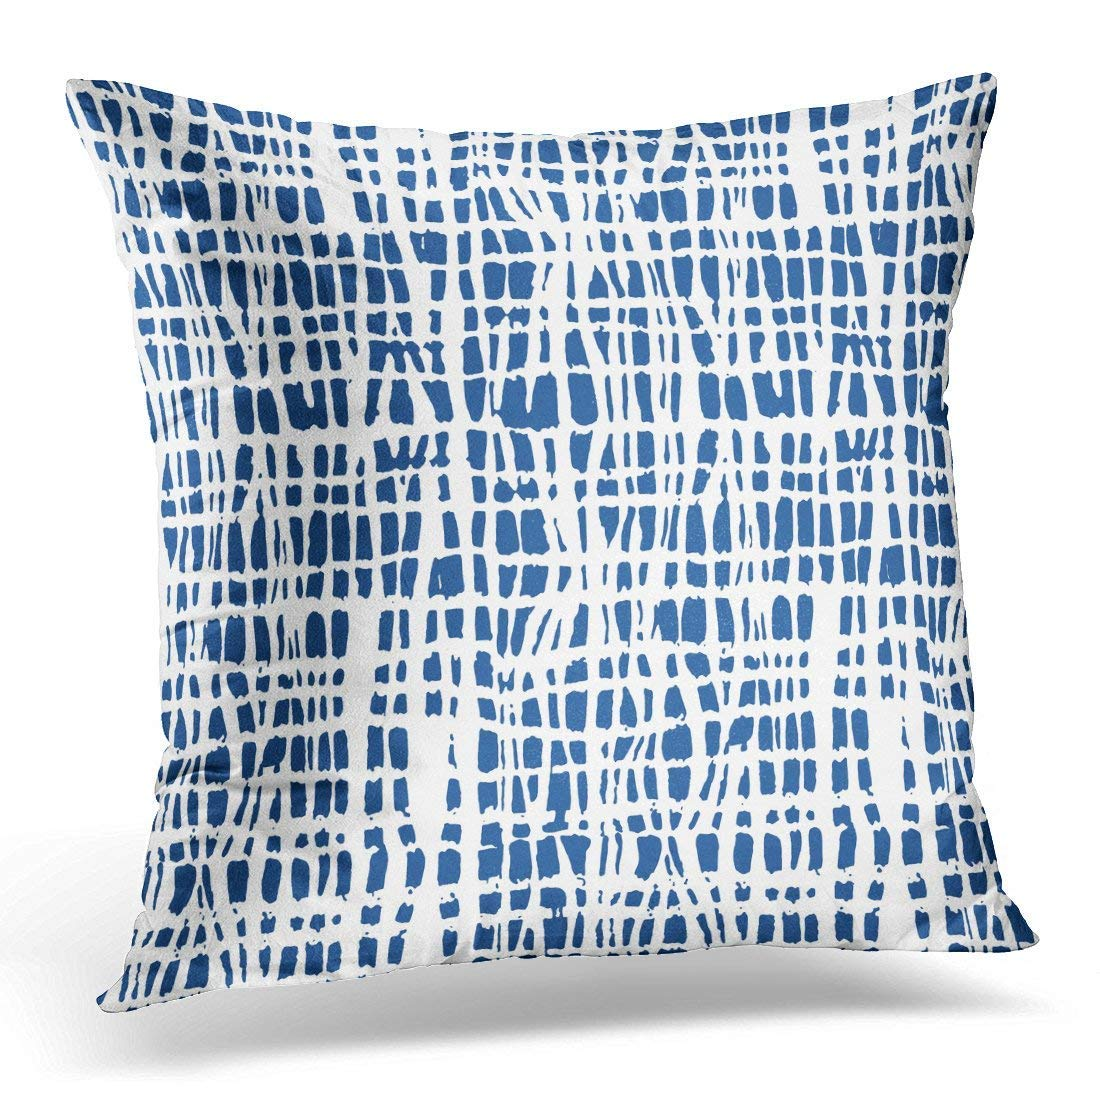 Ikat Weave Watercolor Japanese Traditional Indigo Shibori Pattern Minimalism Abstract Decorative Pillow Case Home Decor Square 18x18 Inches 45cm F. Twiggs